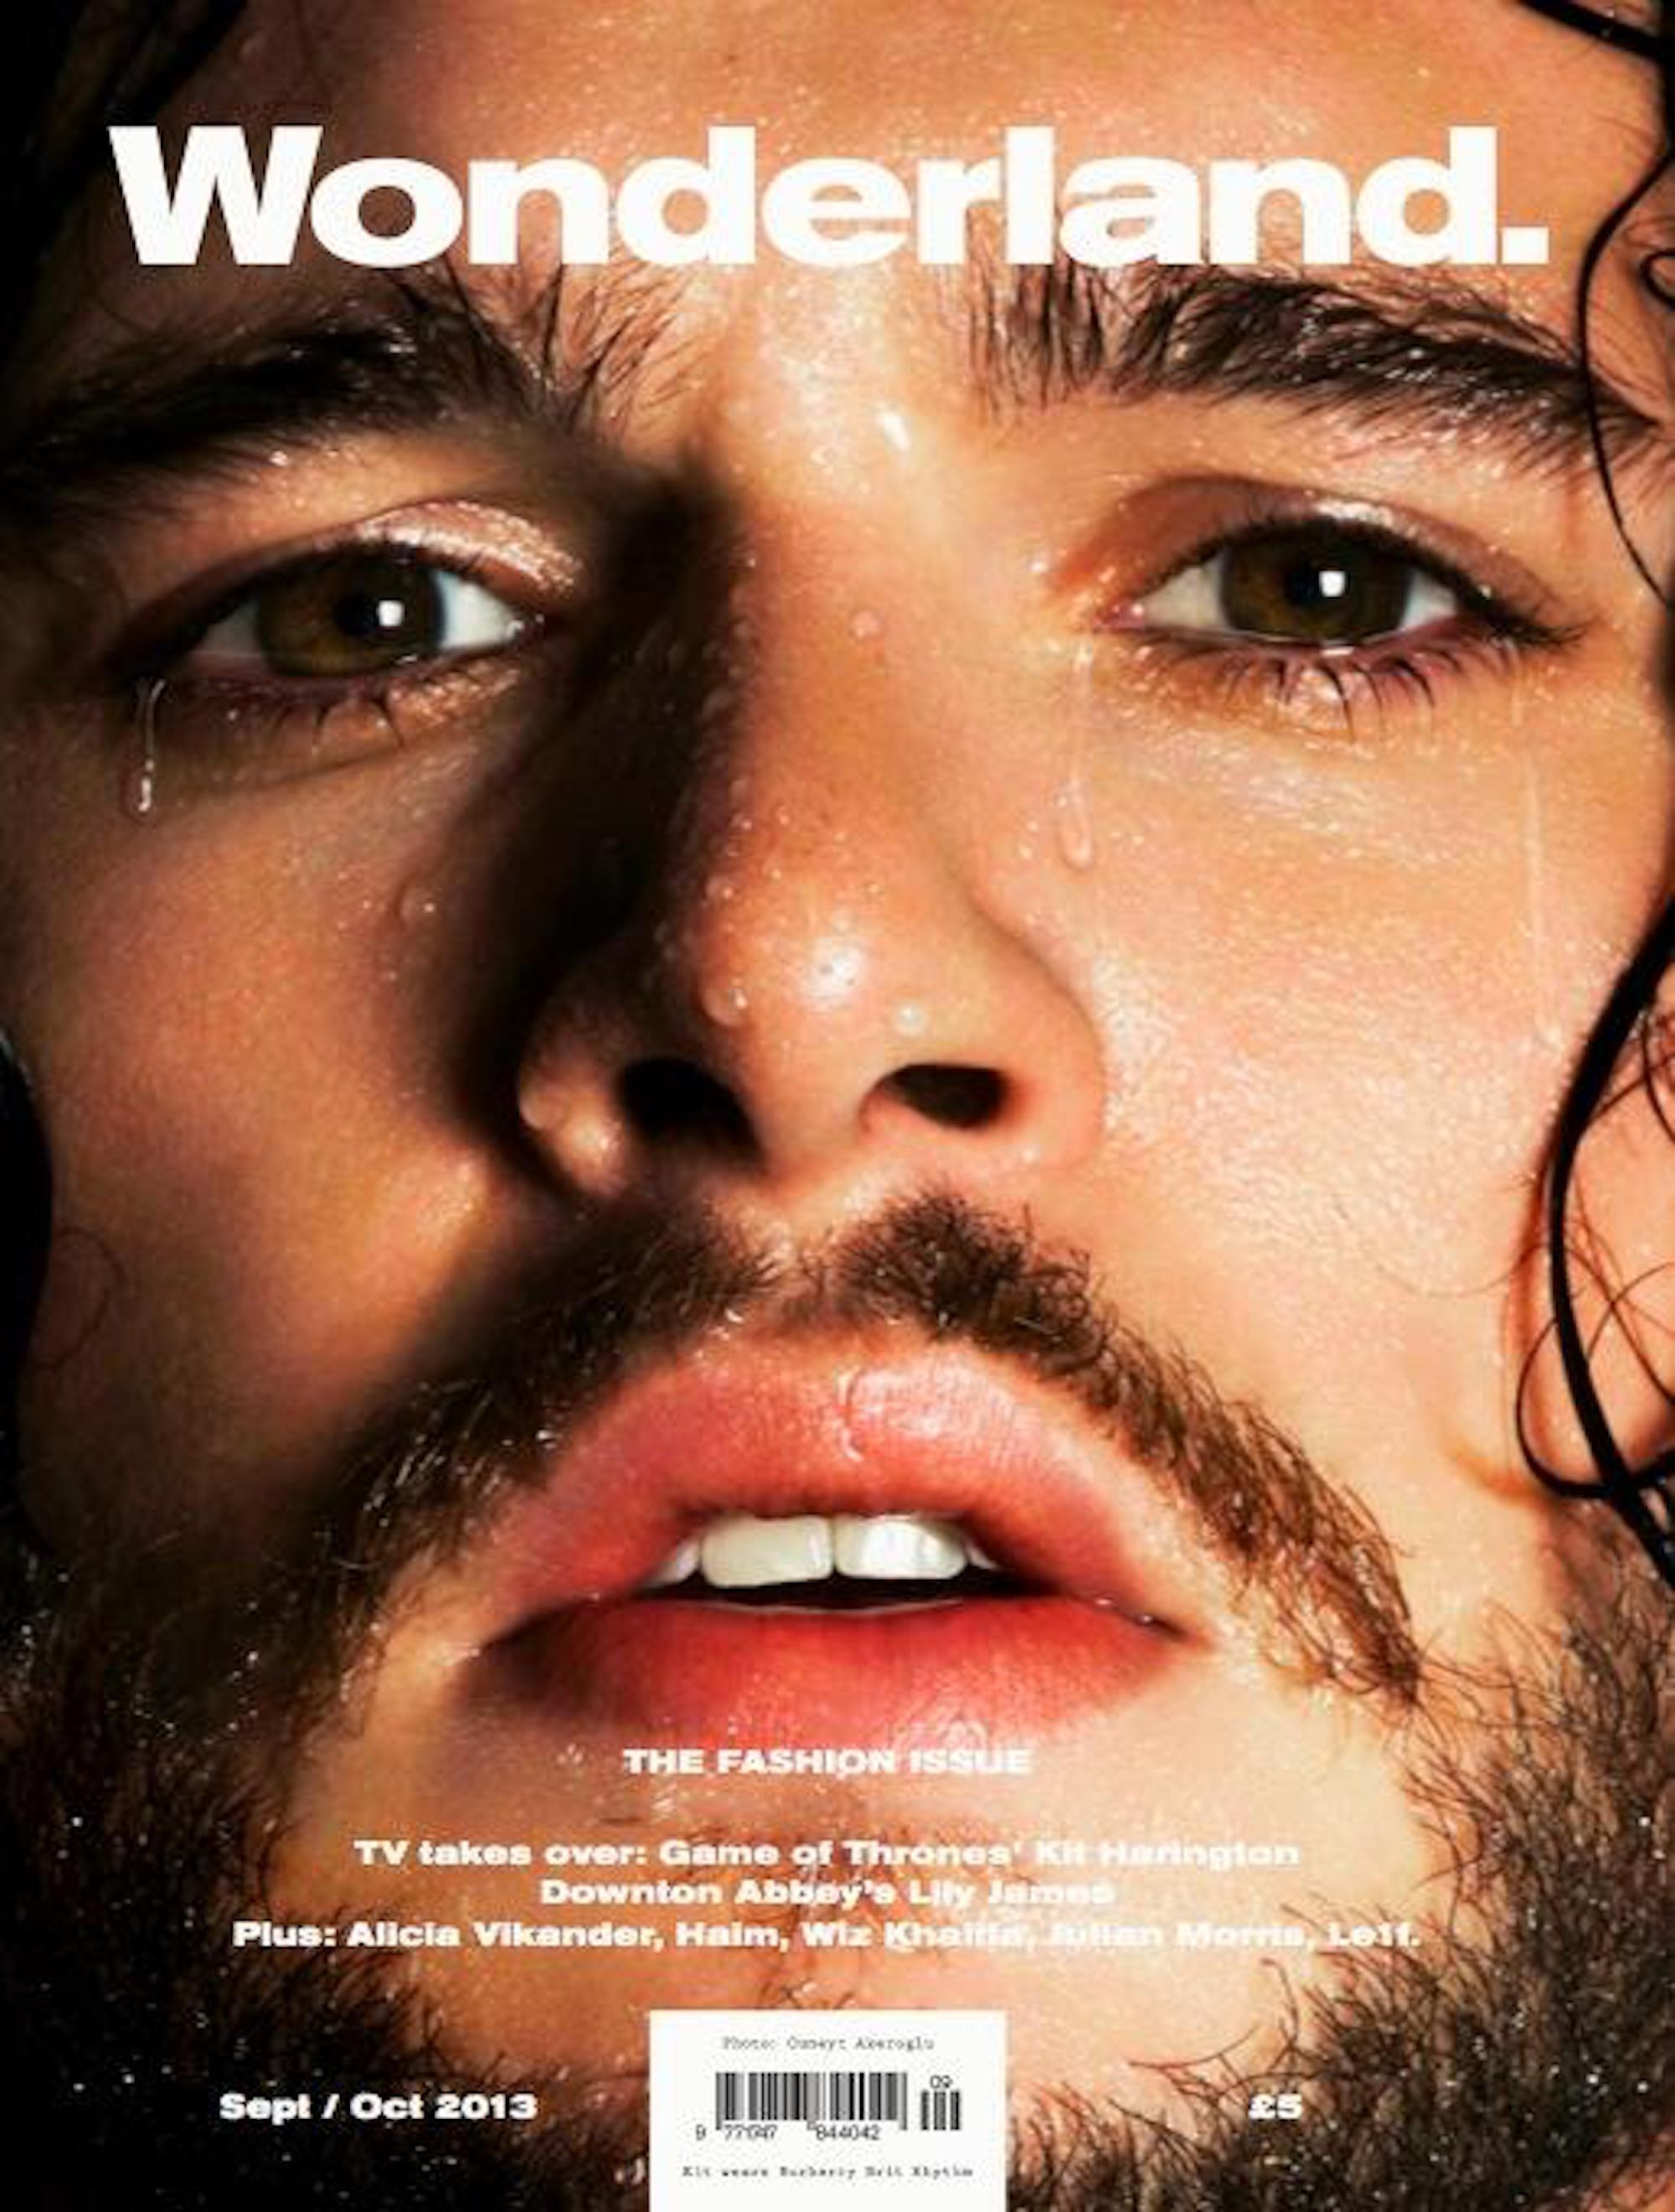 Kit Harington on the cover of Wonderland